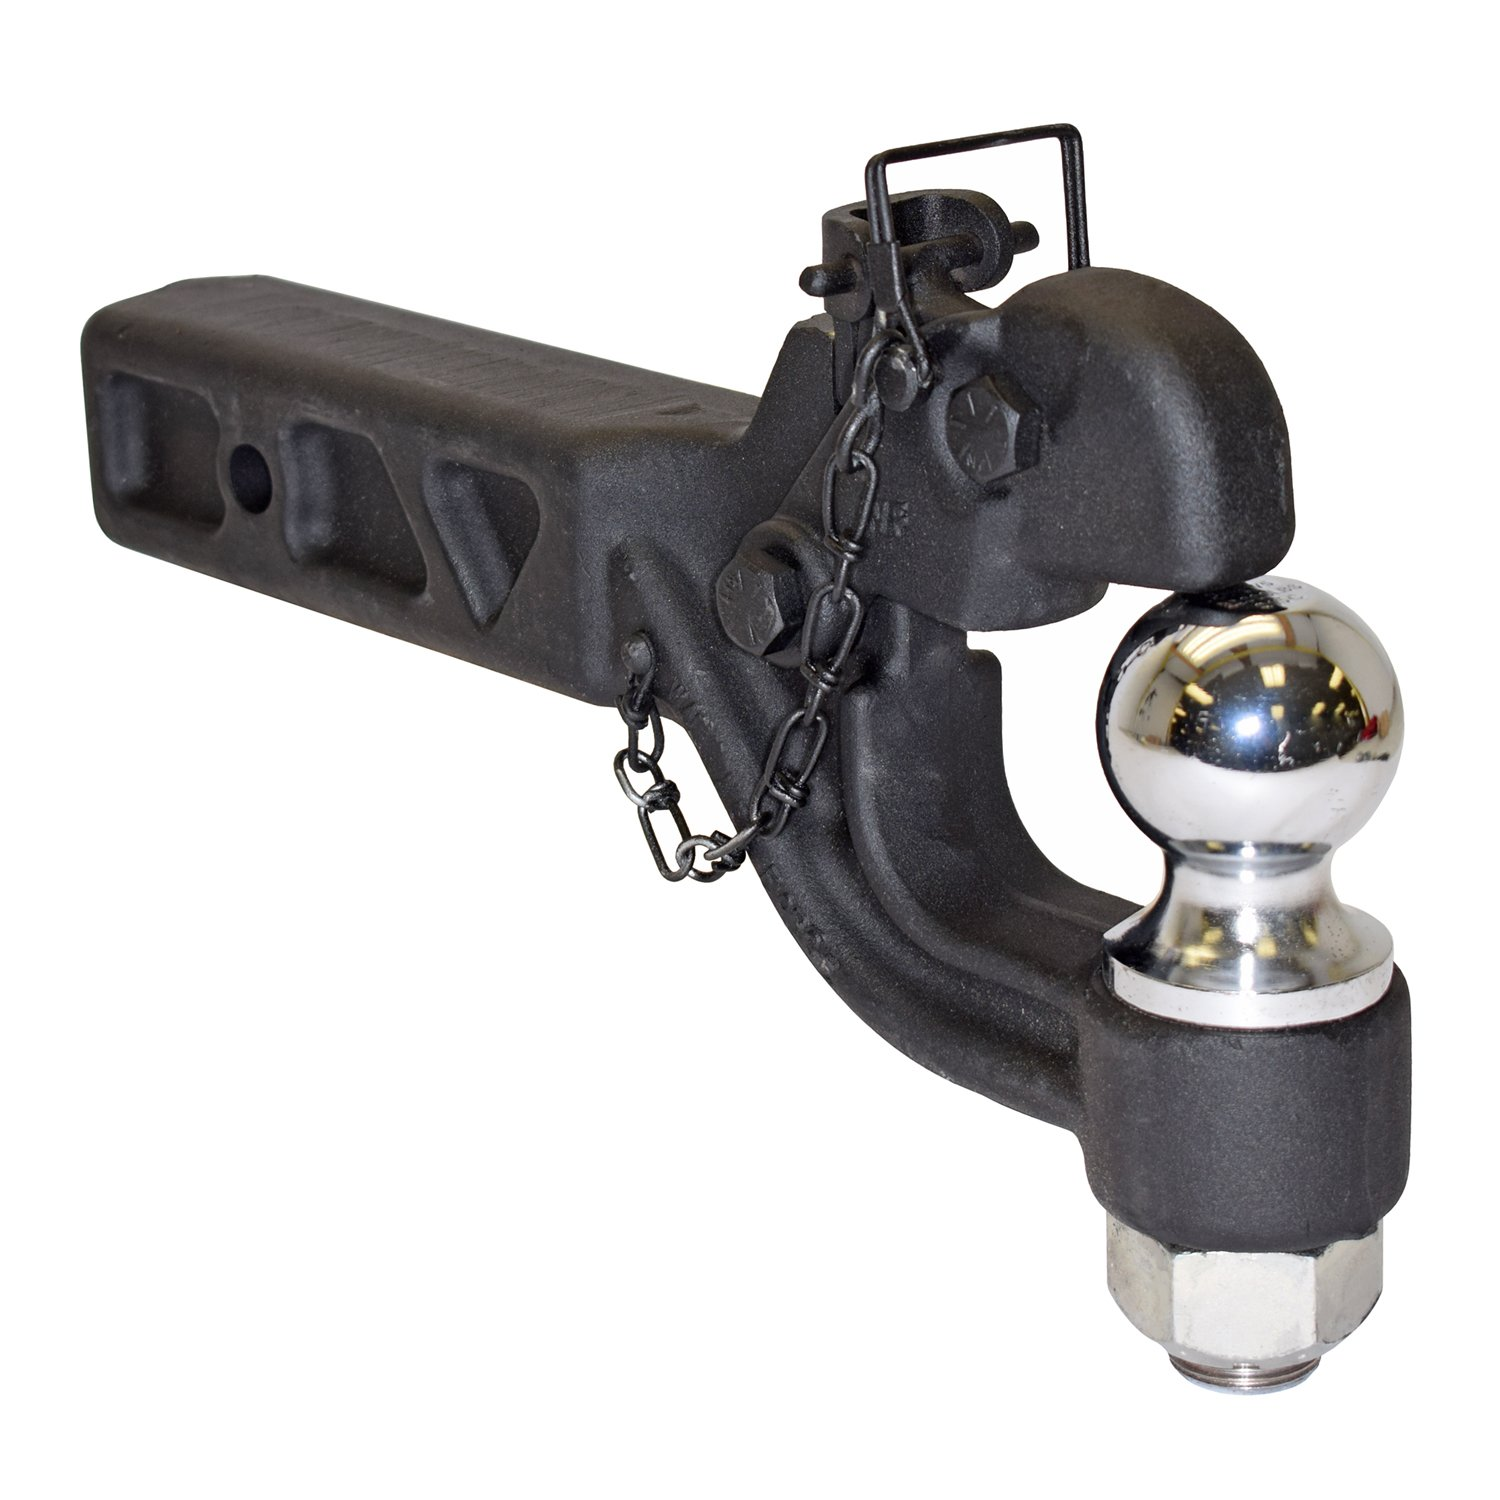 Made In U.S.A. 2-1//2 Inch Receiver Mounted Combination Pintle Hook With 2 Inch Ball